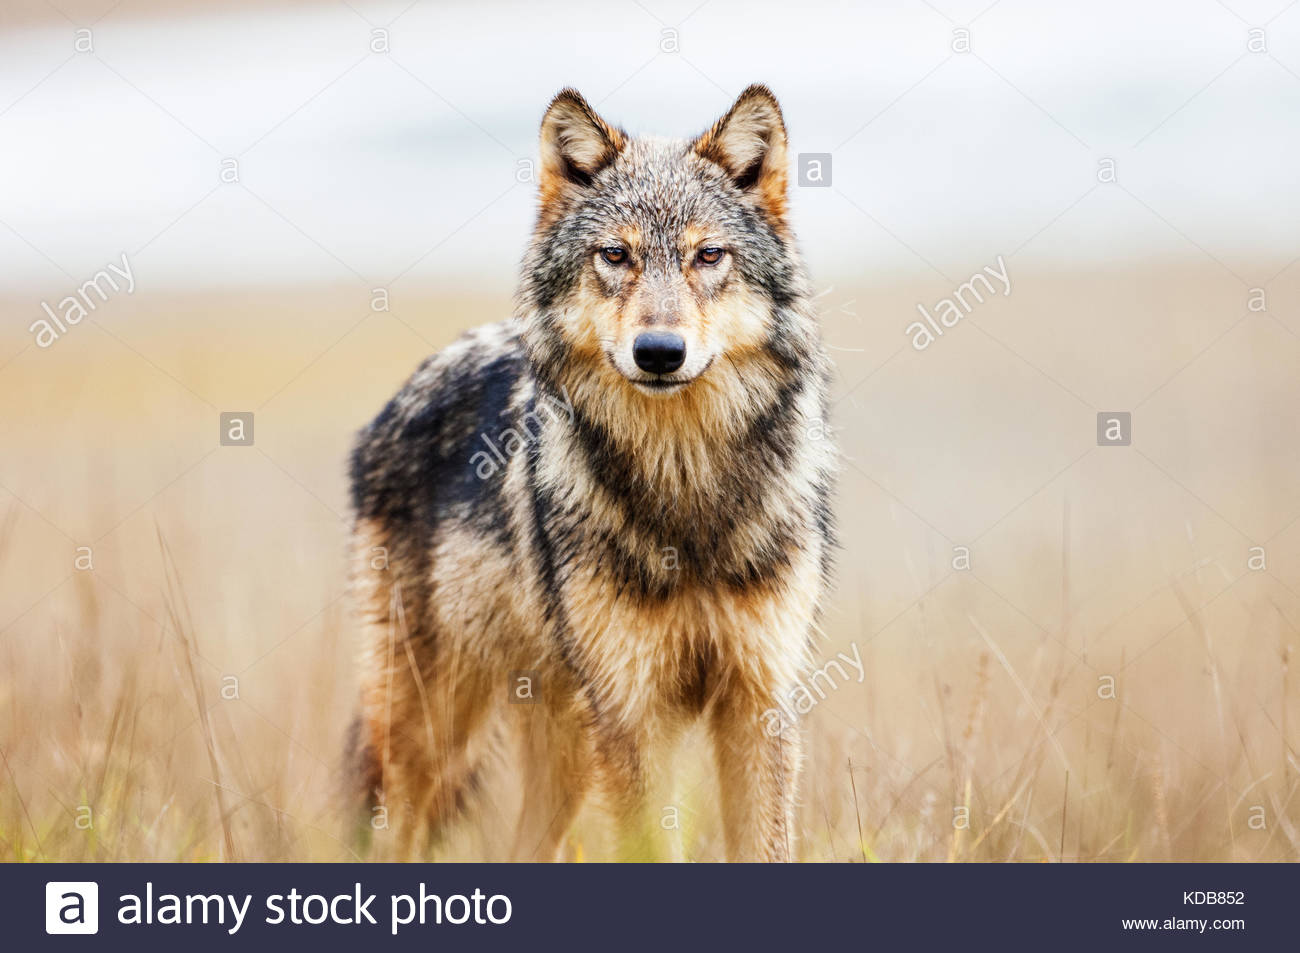 Young coastal wolf, canis lupus, in a river estuary. - Stock Image